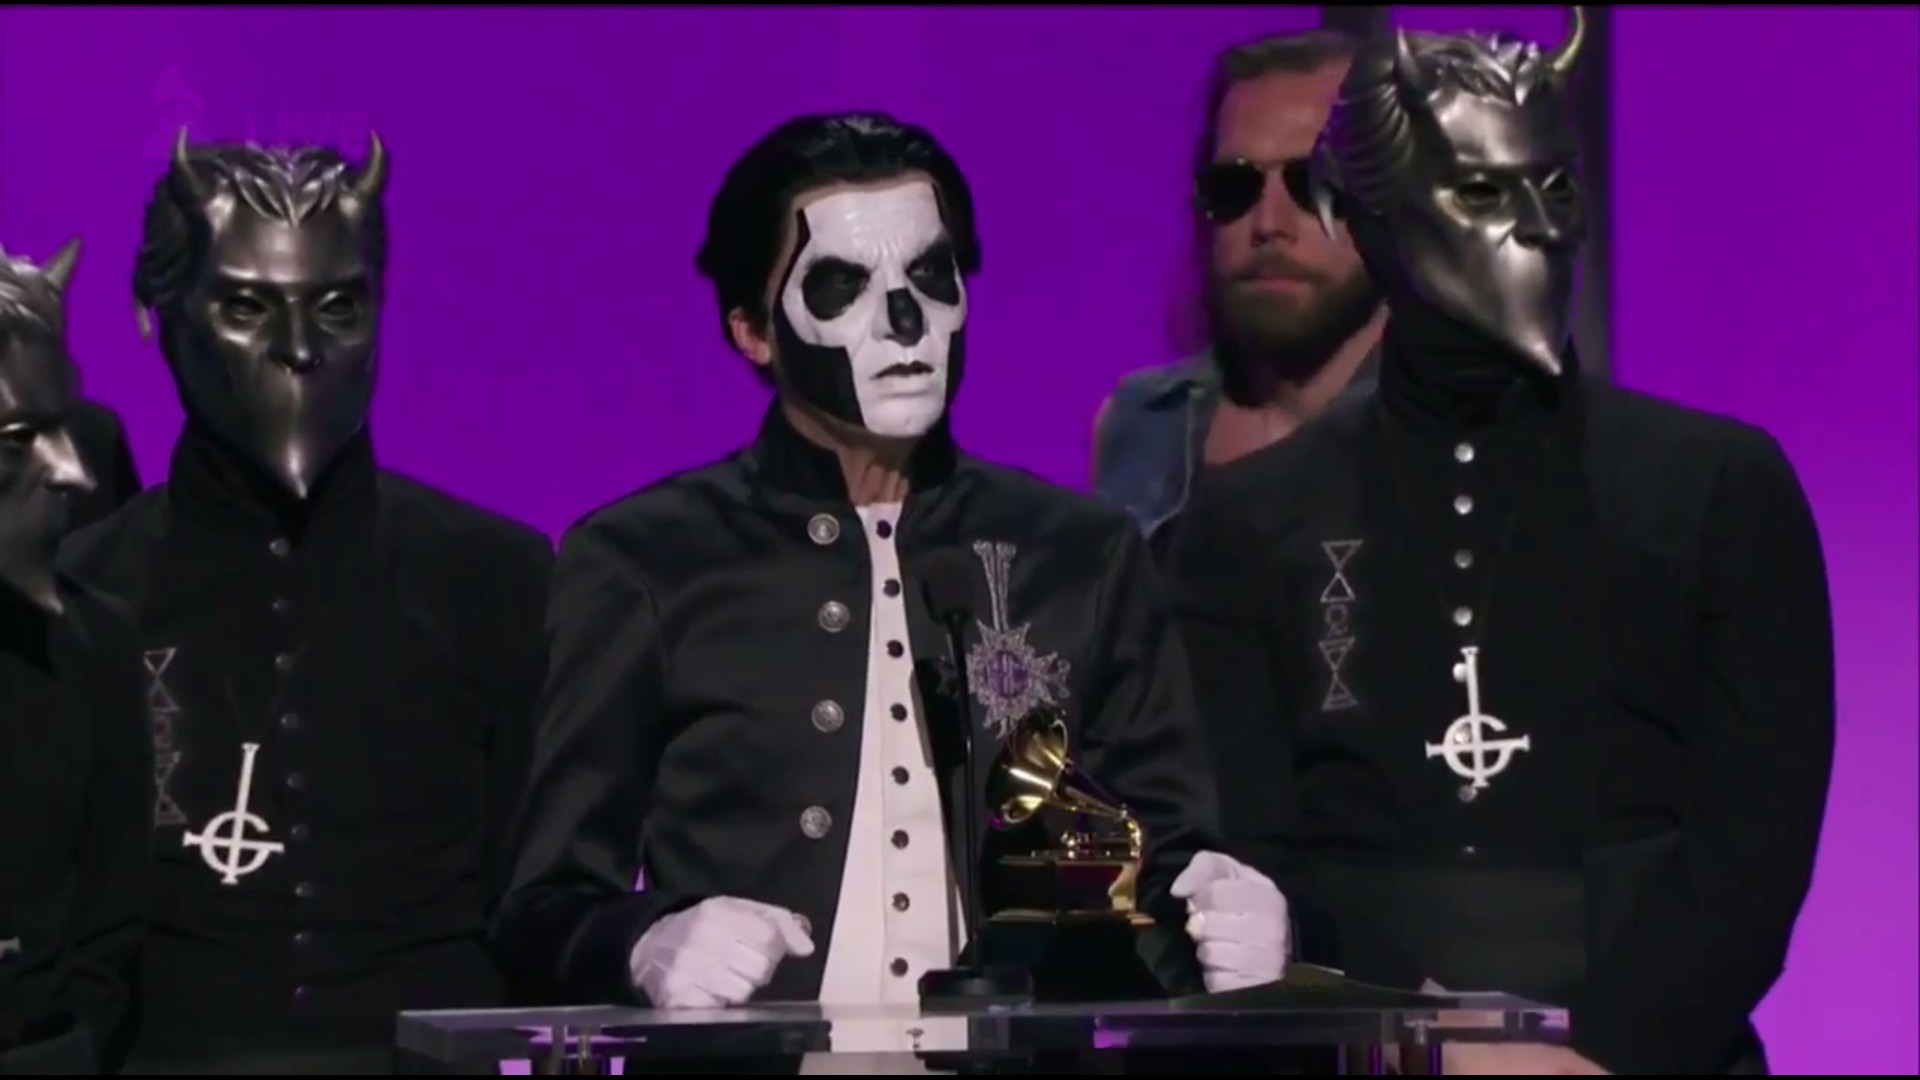 Children of Ghost - Your source for everything about the band Ghost